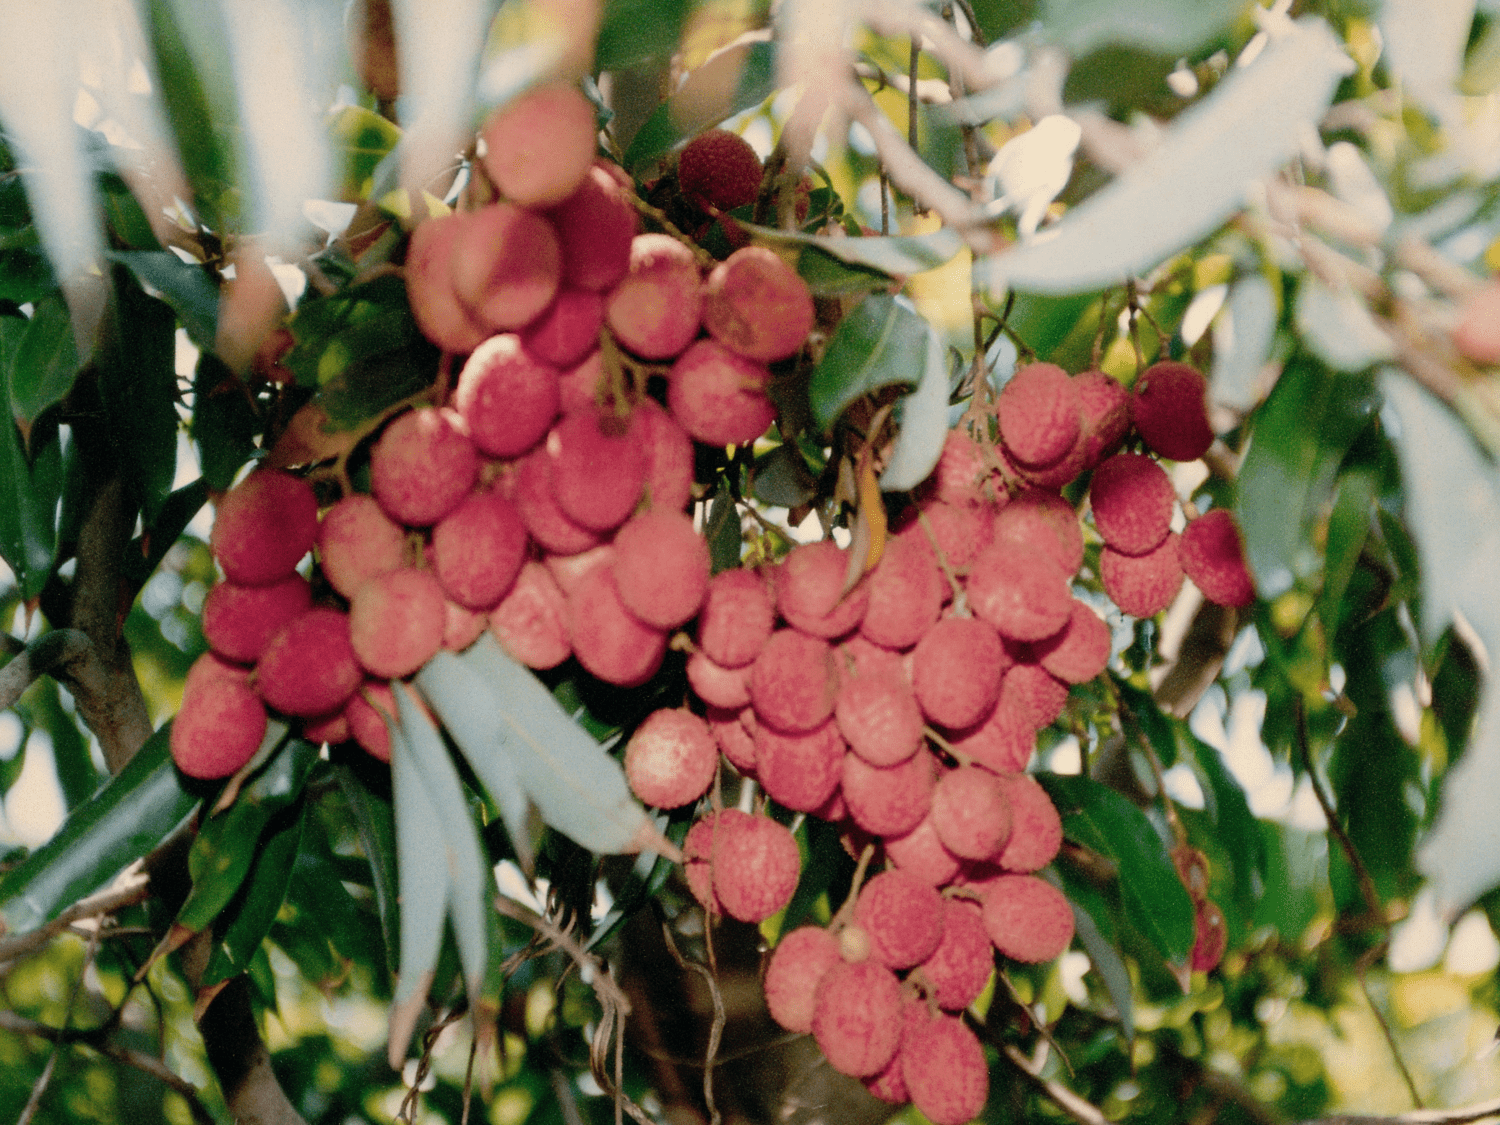 Lychee Production in Three Years